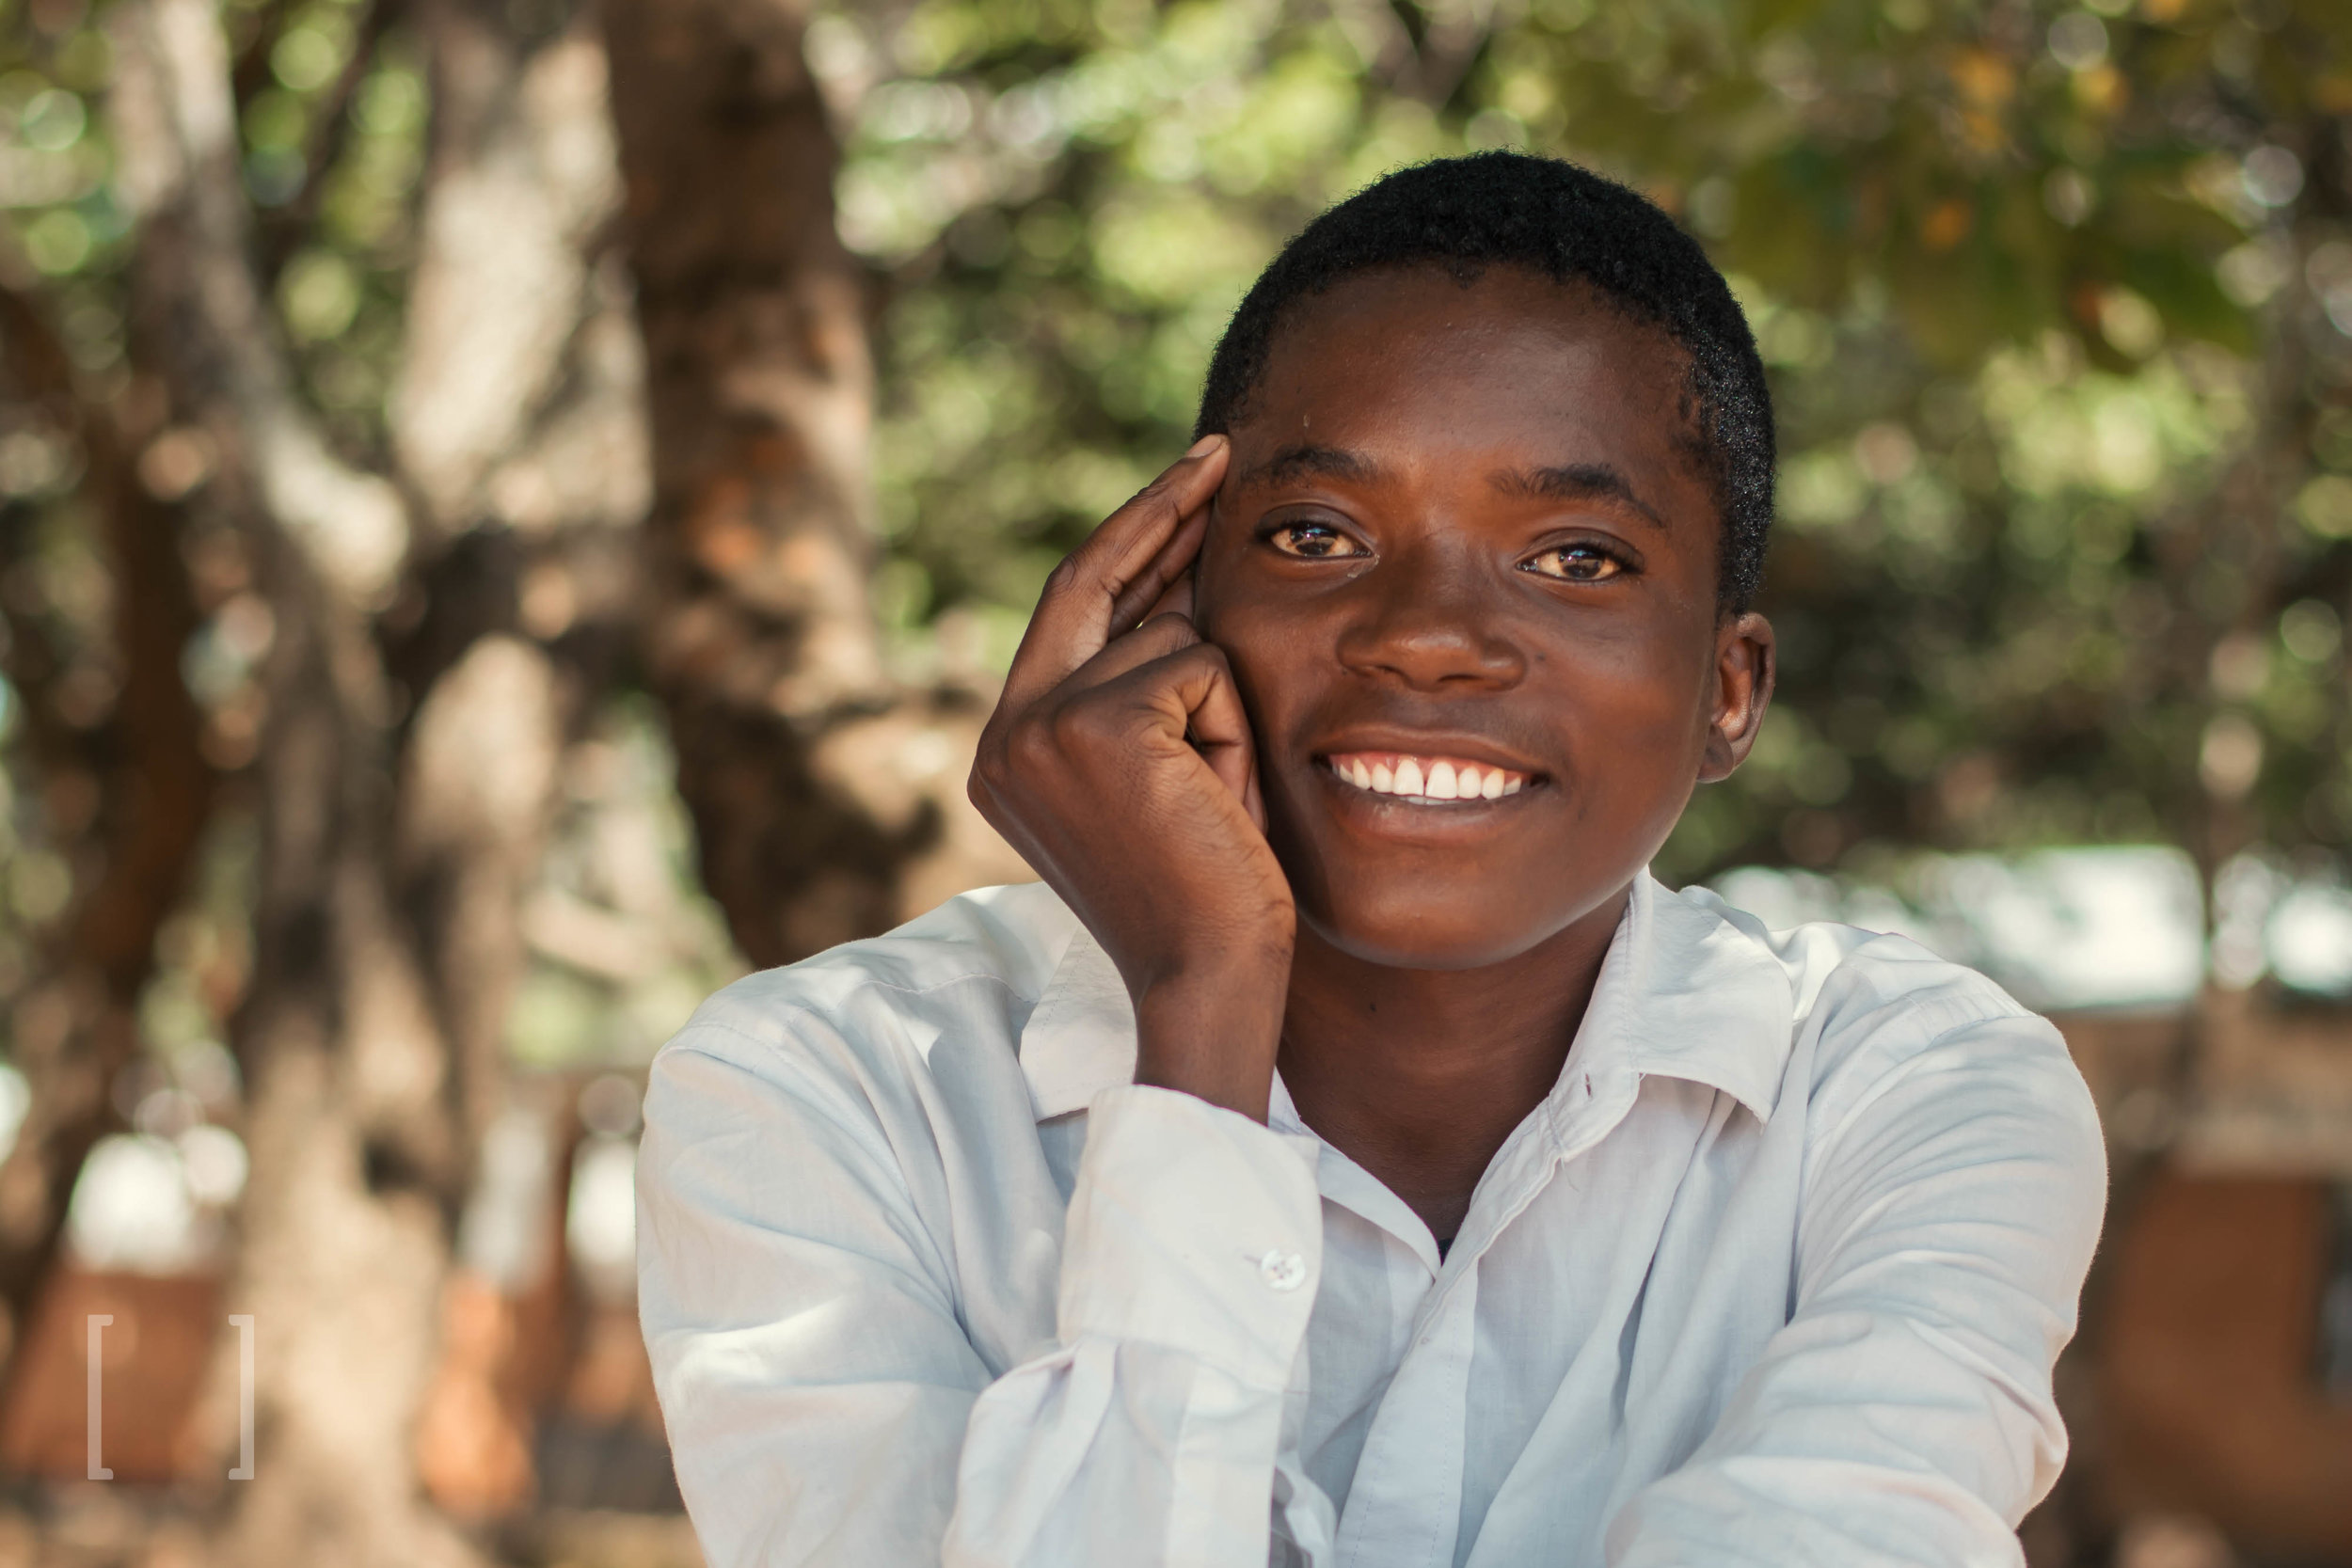 Maxwell - Maxwell was born in 2002. He and his siblings all came to Home of Hope after their mother died. Maxwell is a green thumb who dreams of working in the Ministry of Agriculture. Cultivate his ambitions and support Maxwell today!